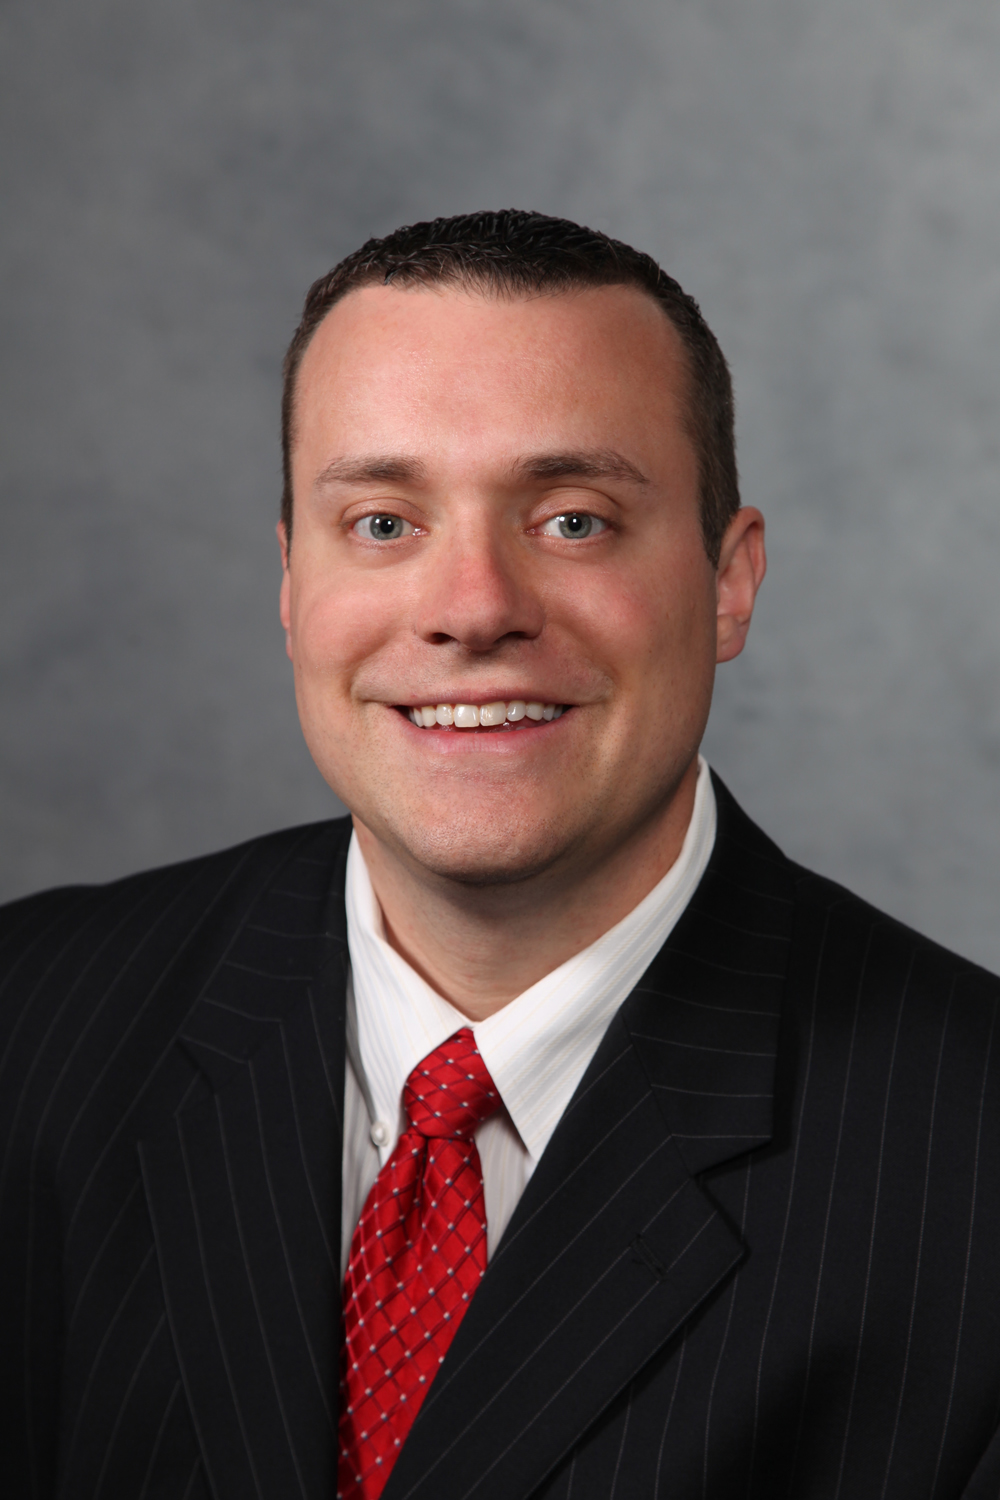 eadshot of DOug Guilbert, Entrepreneur and Insurance Agency Owner